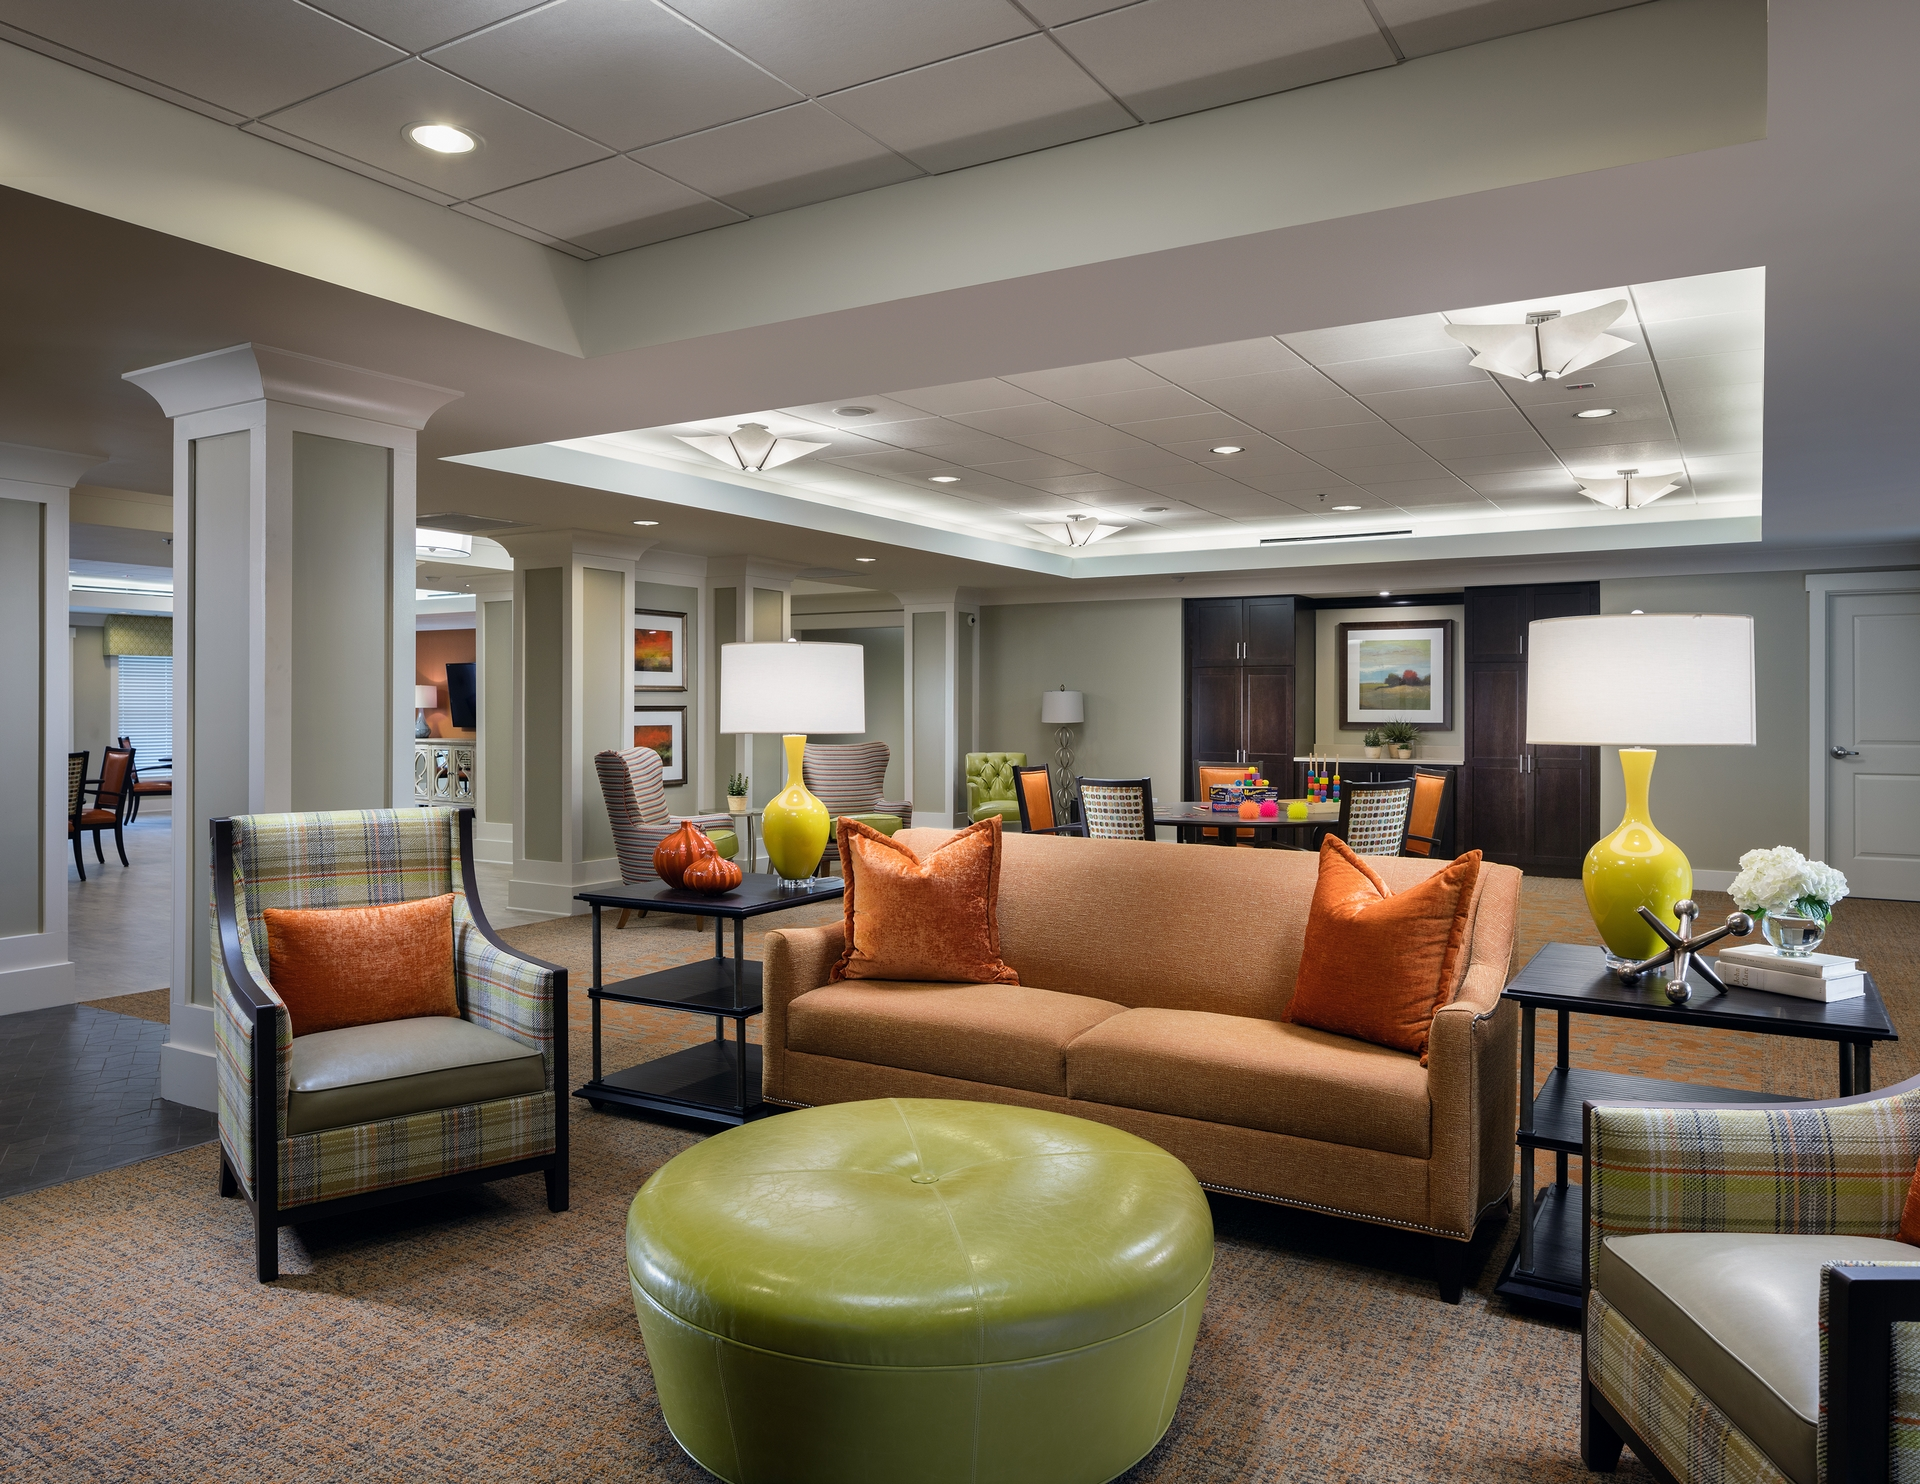 The Palette Is Sophisticated And The Memory Care Spaces Utilize A More  Cheerful Approach